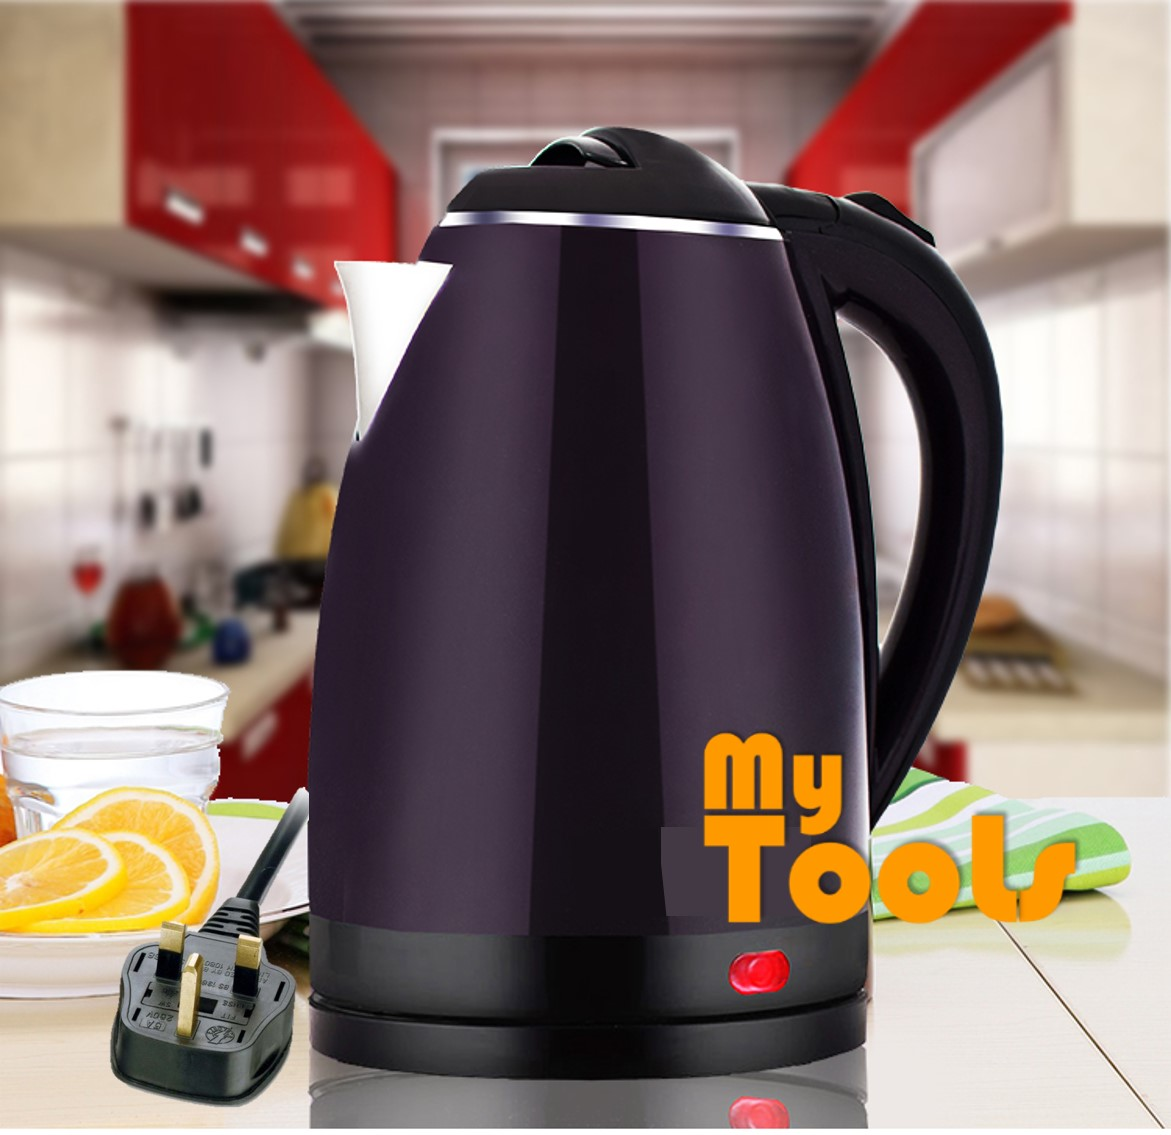 Premium Stainless Steel Electric Automatic Cut Off Jug Kettle (Malaysia 3-Pin Plug)